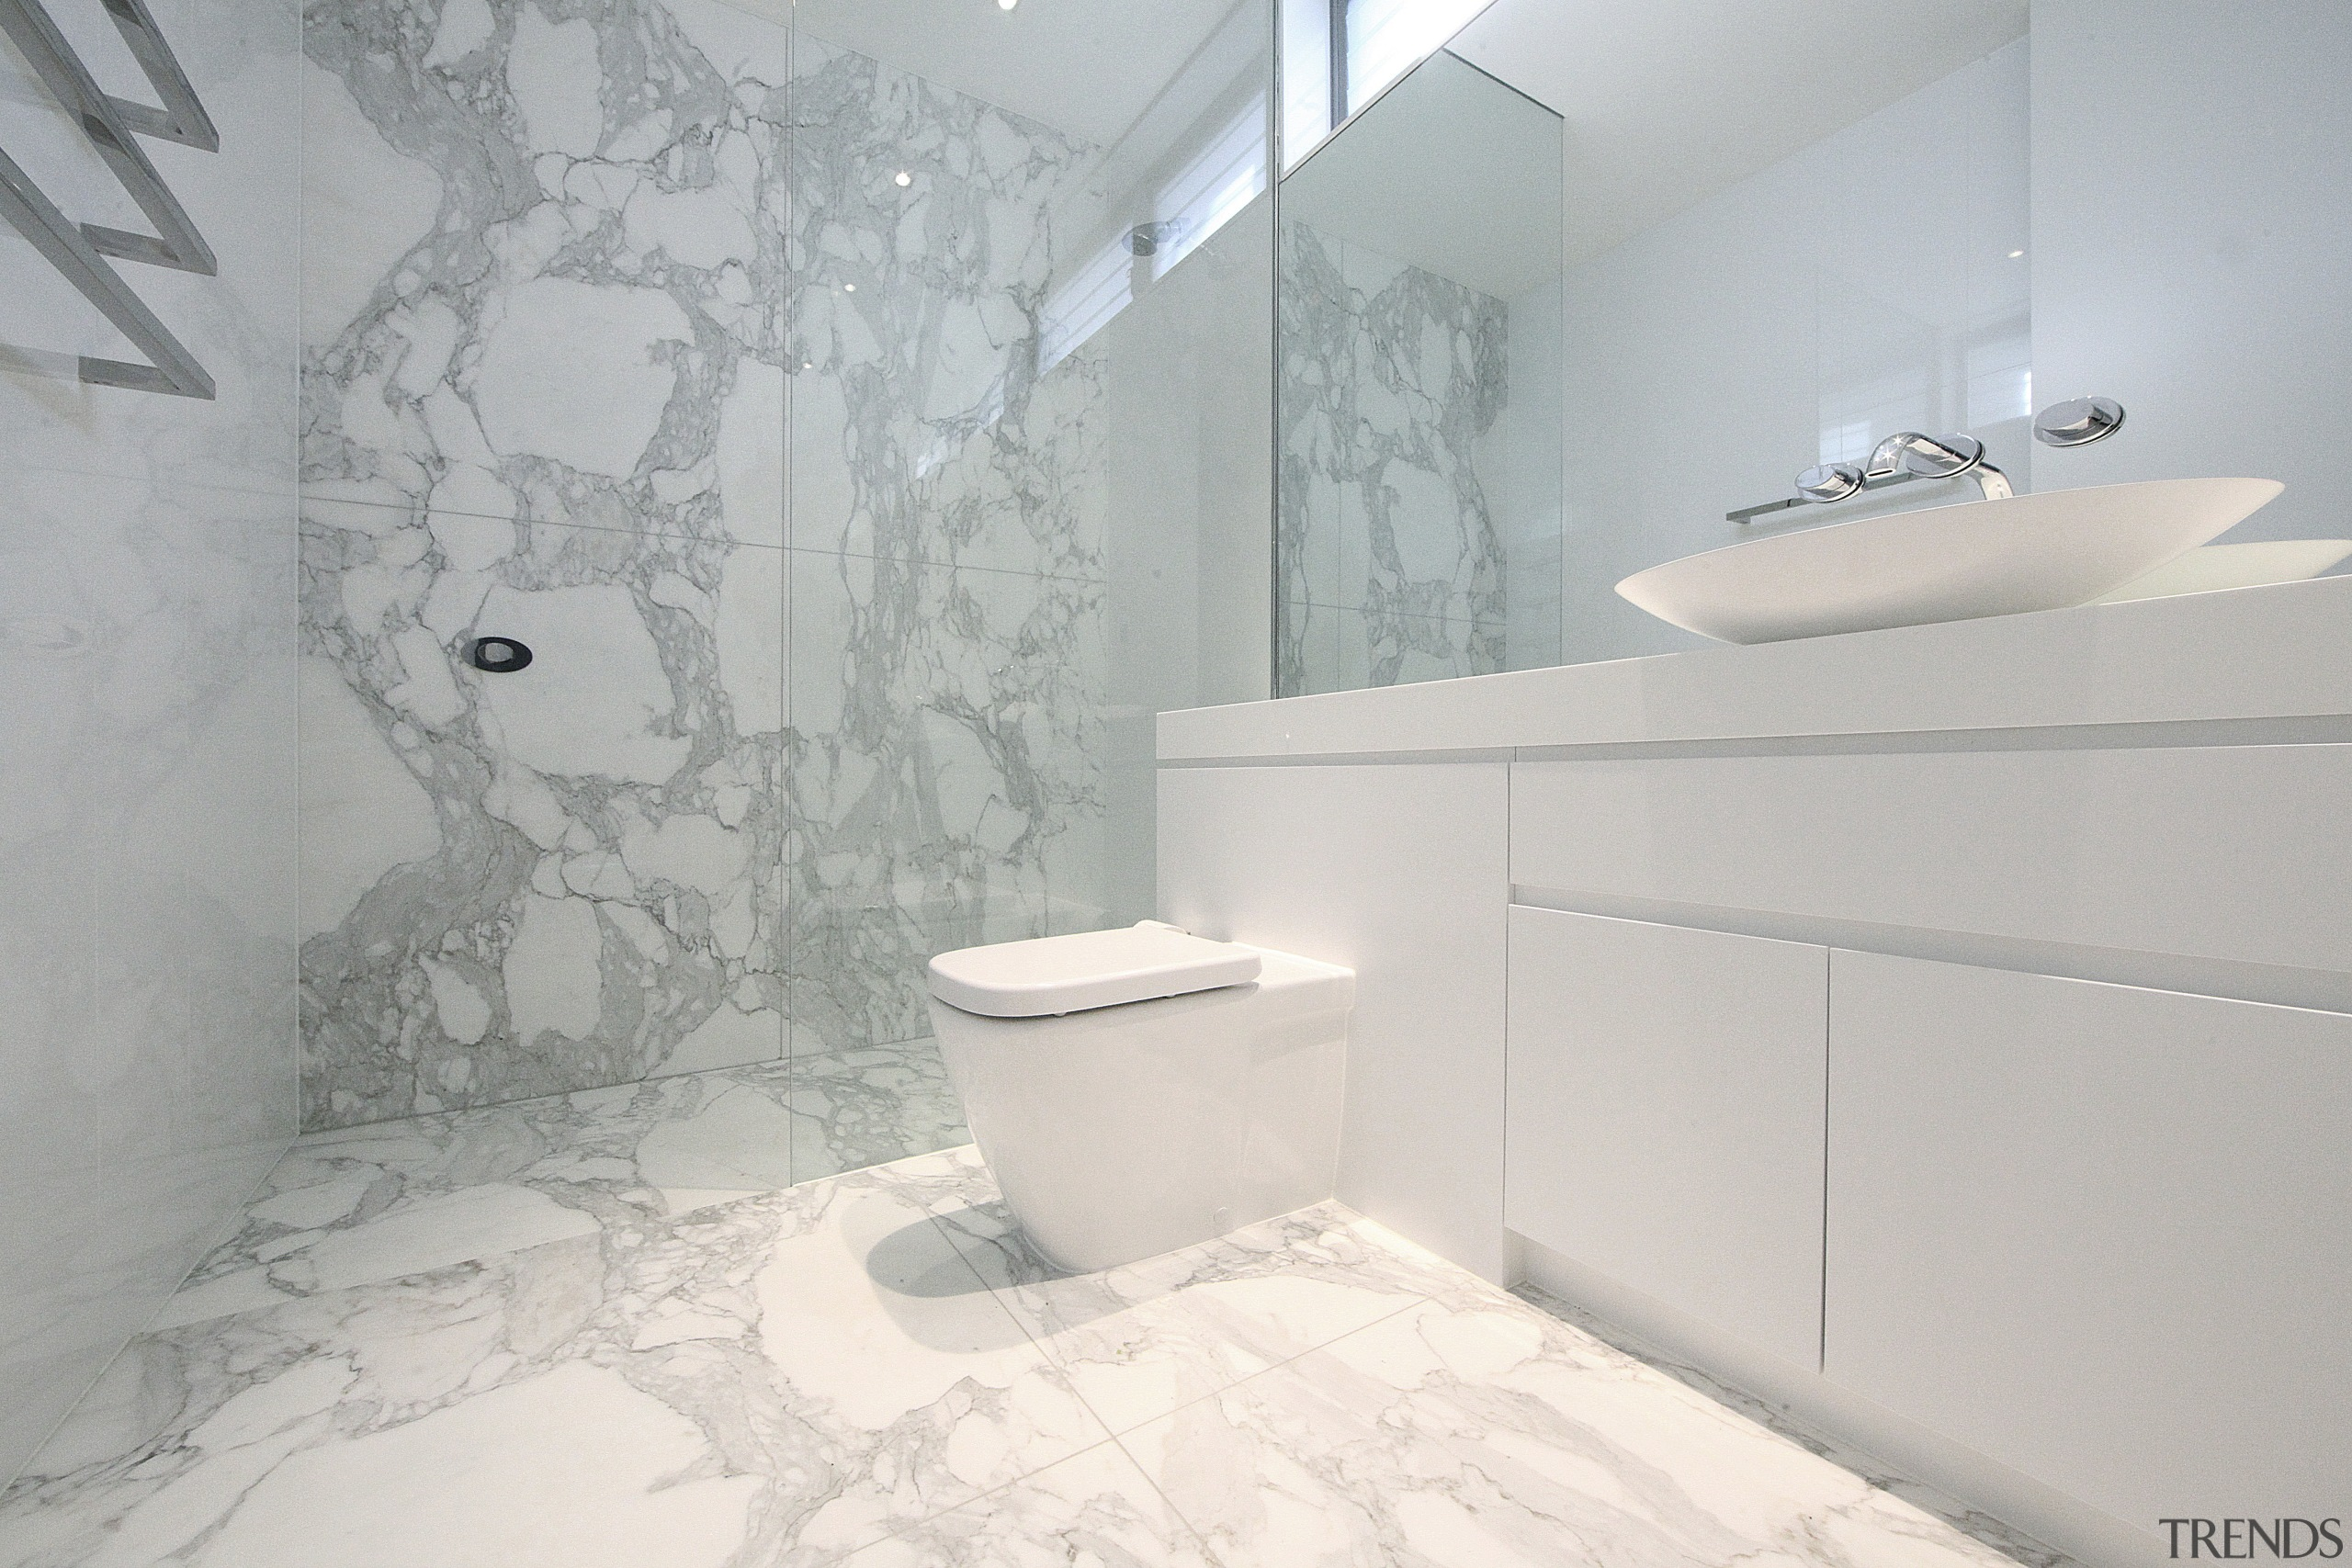 Bathroom with white vanity and toilet and marble bathroom, bidet, ceramic, floor, home, interior design, plumbing fixture, product design, property, room, tap, tile, toilet seat, wall, gray, white